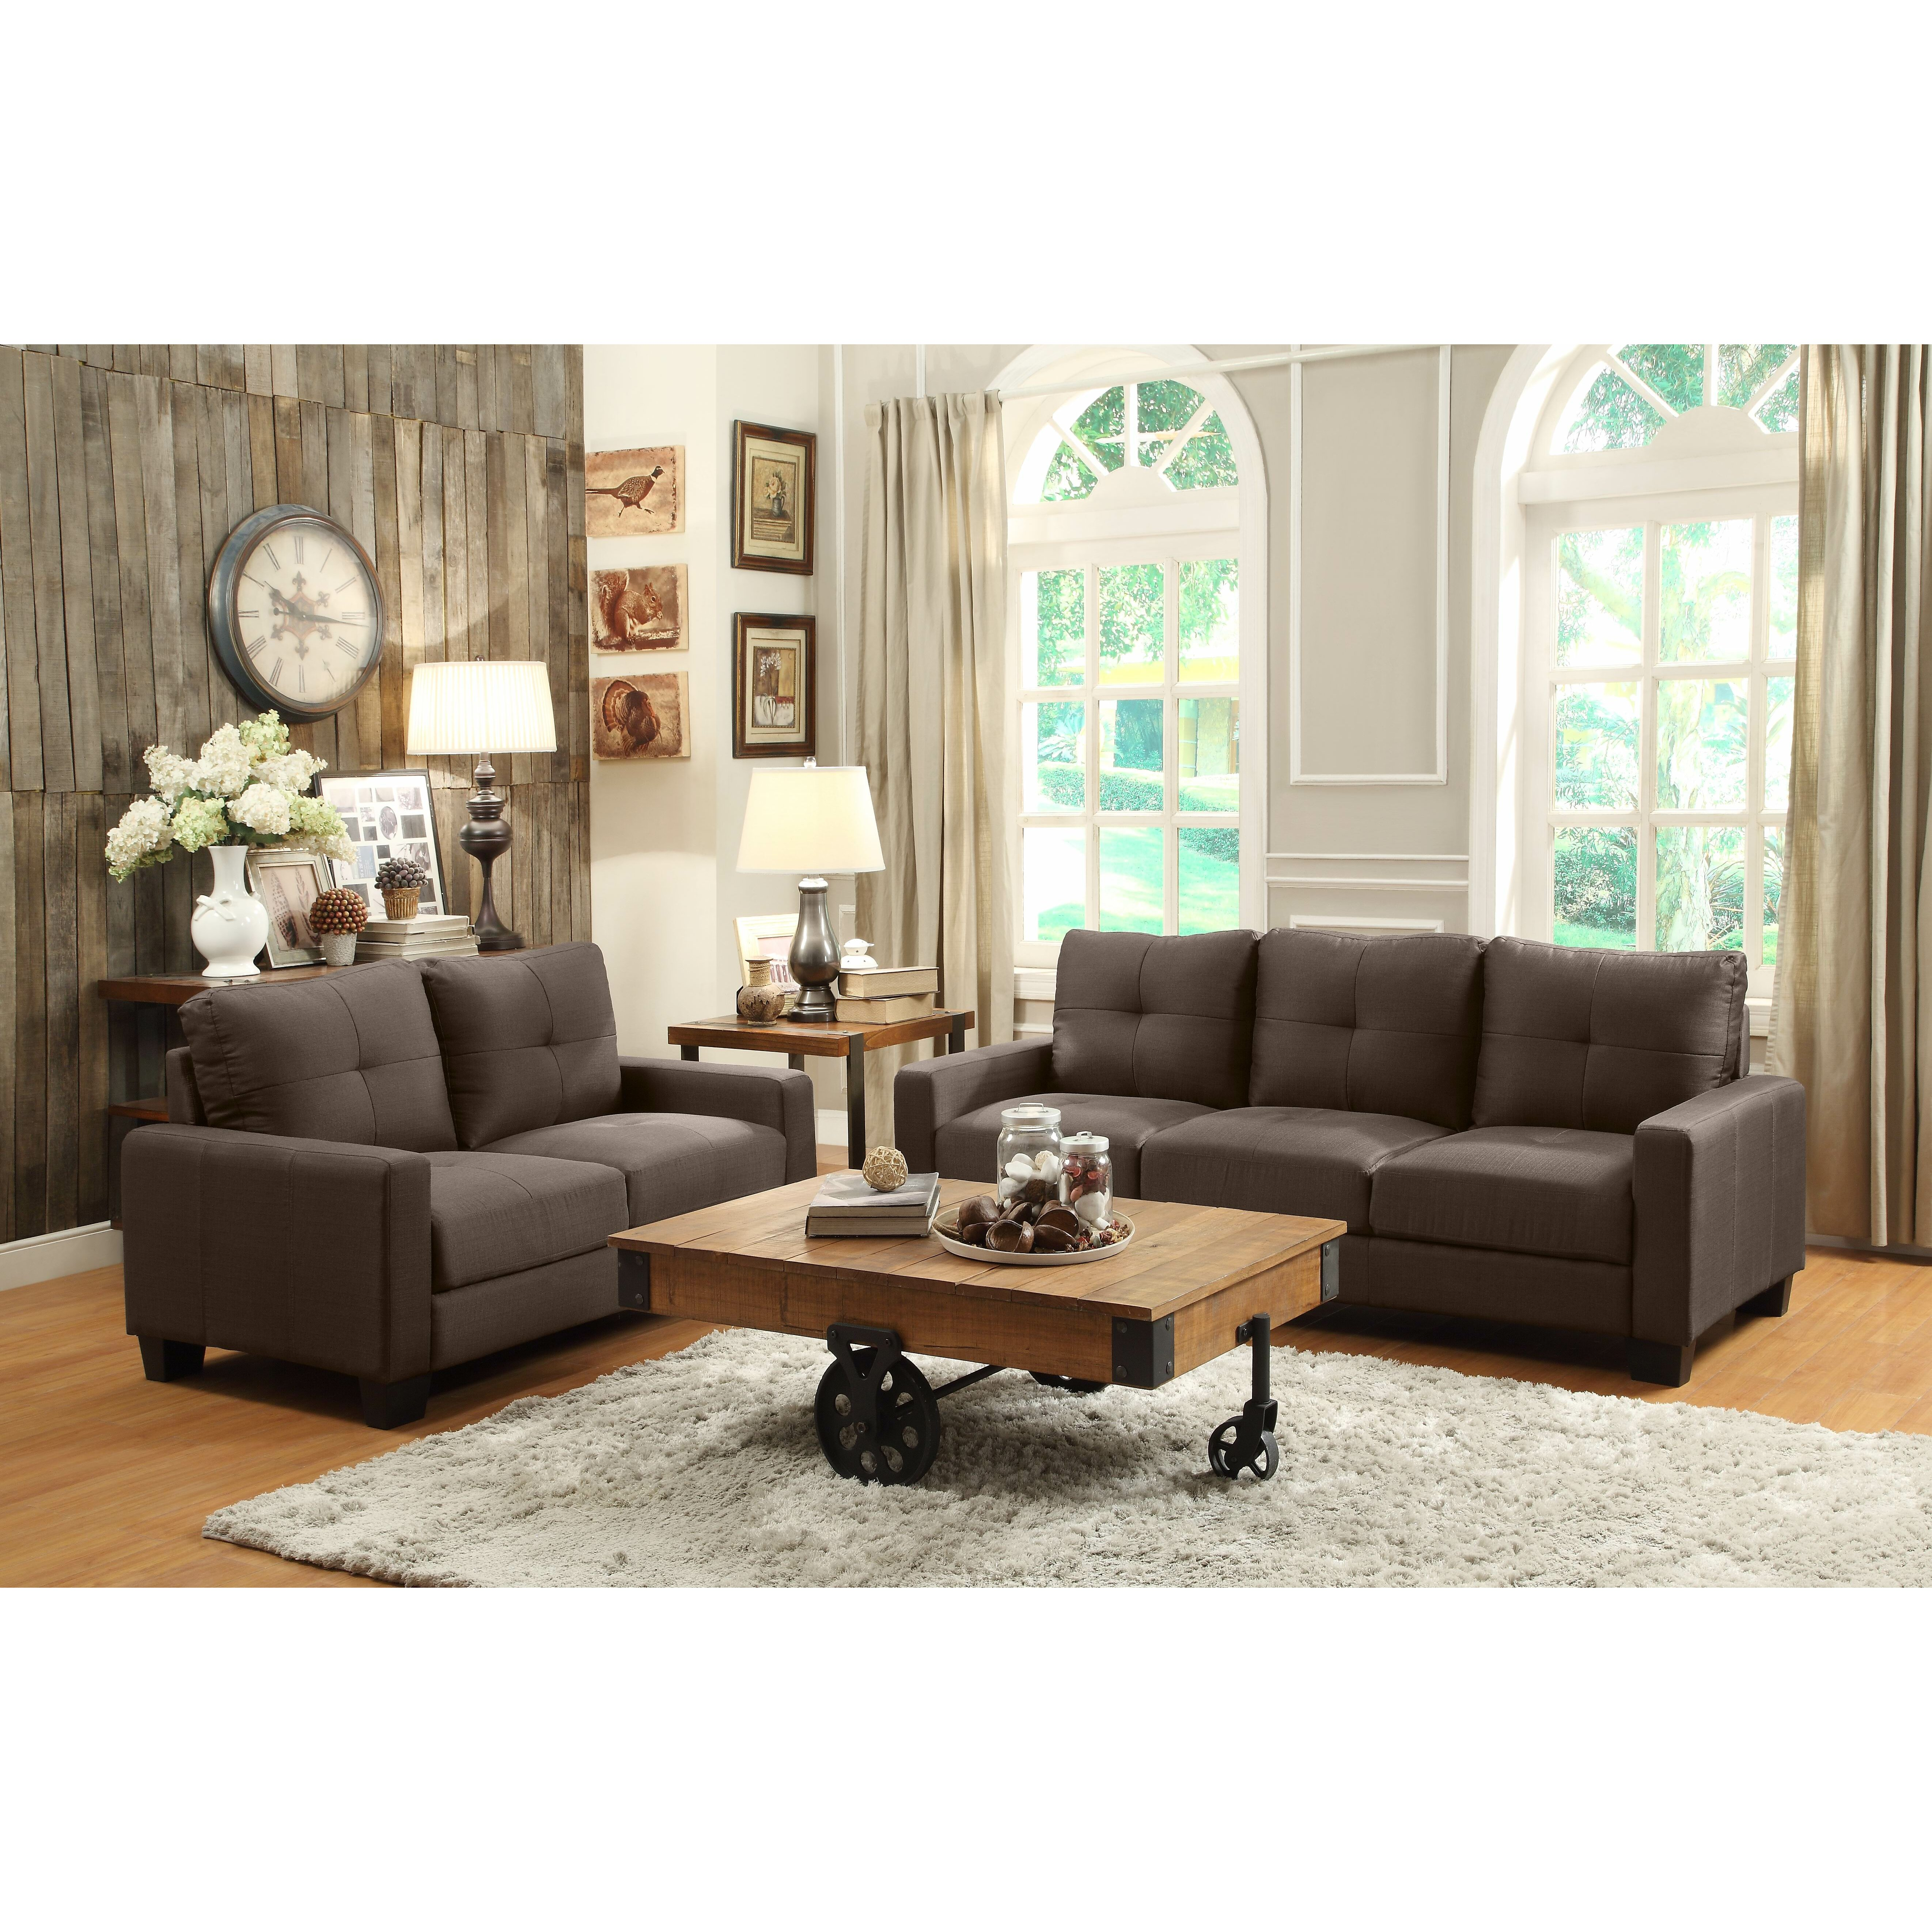 woodhaven hill ramsey living room collection reviews wayfair. Black Bedroom Furniture Sets. Home Design Ideas